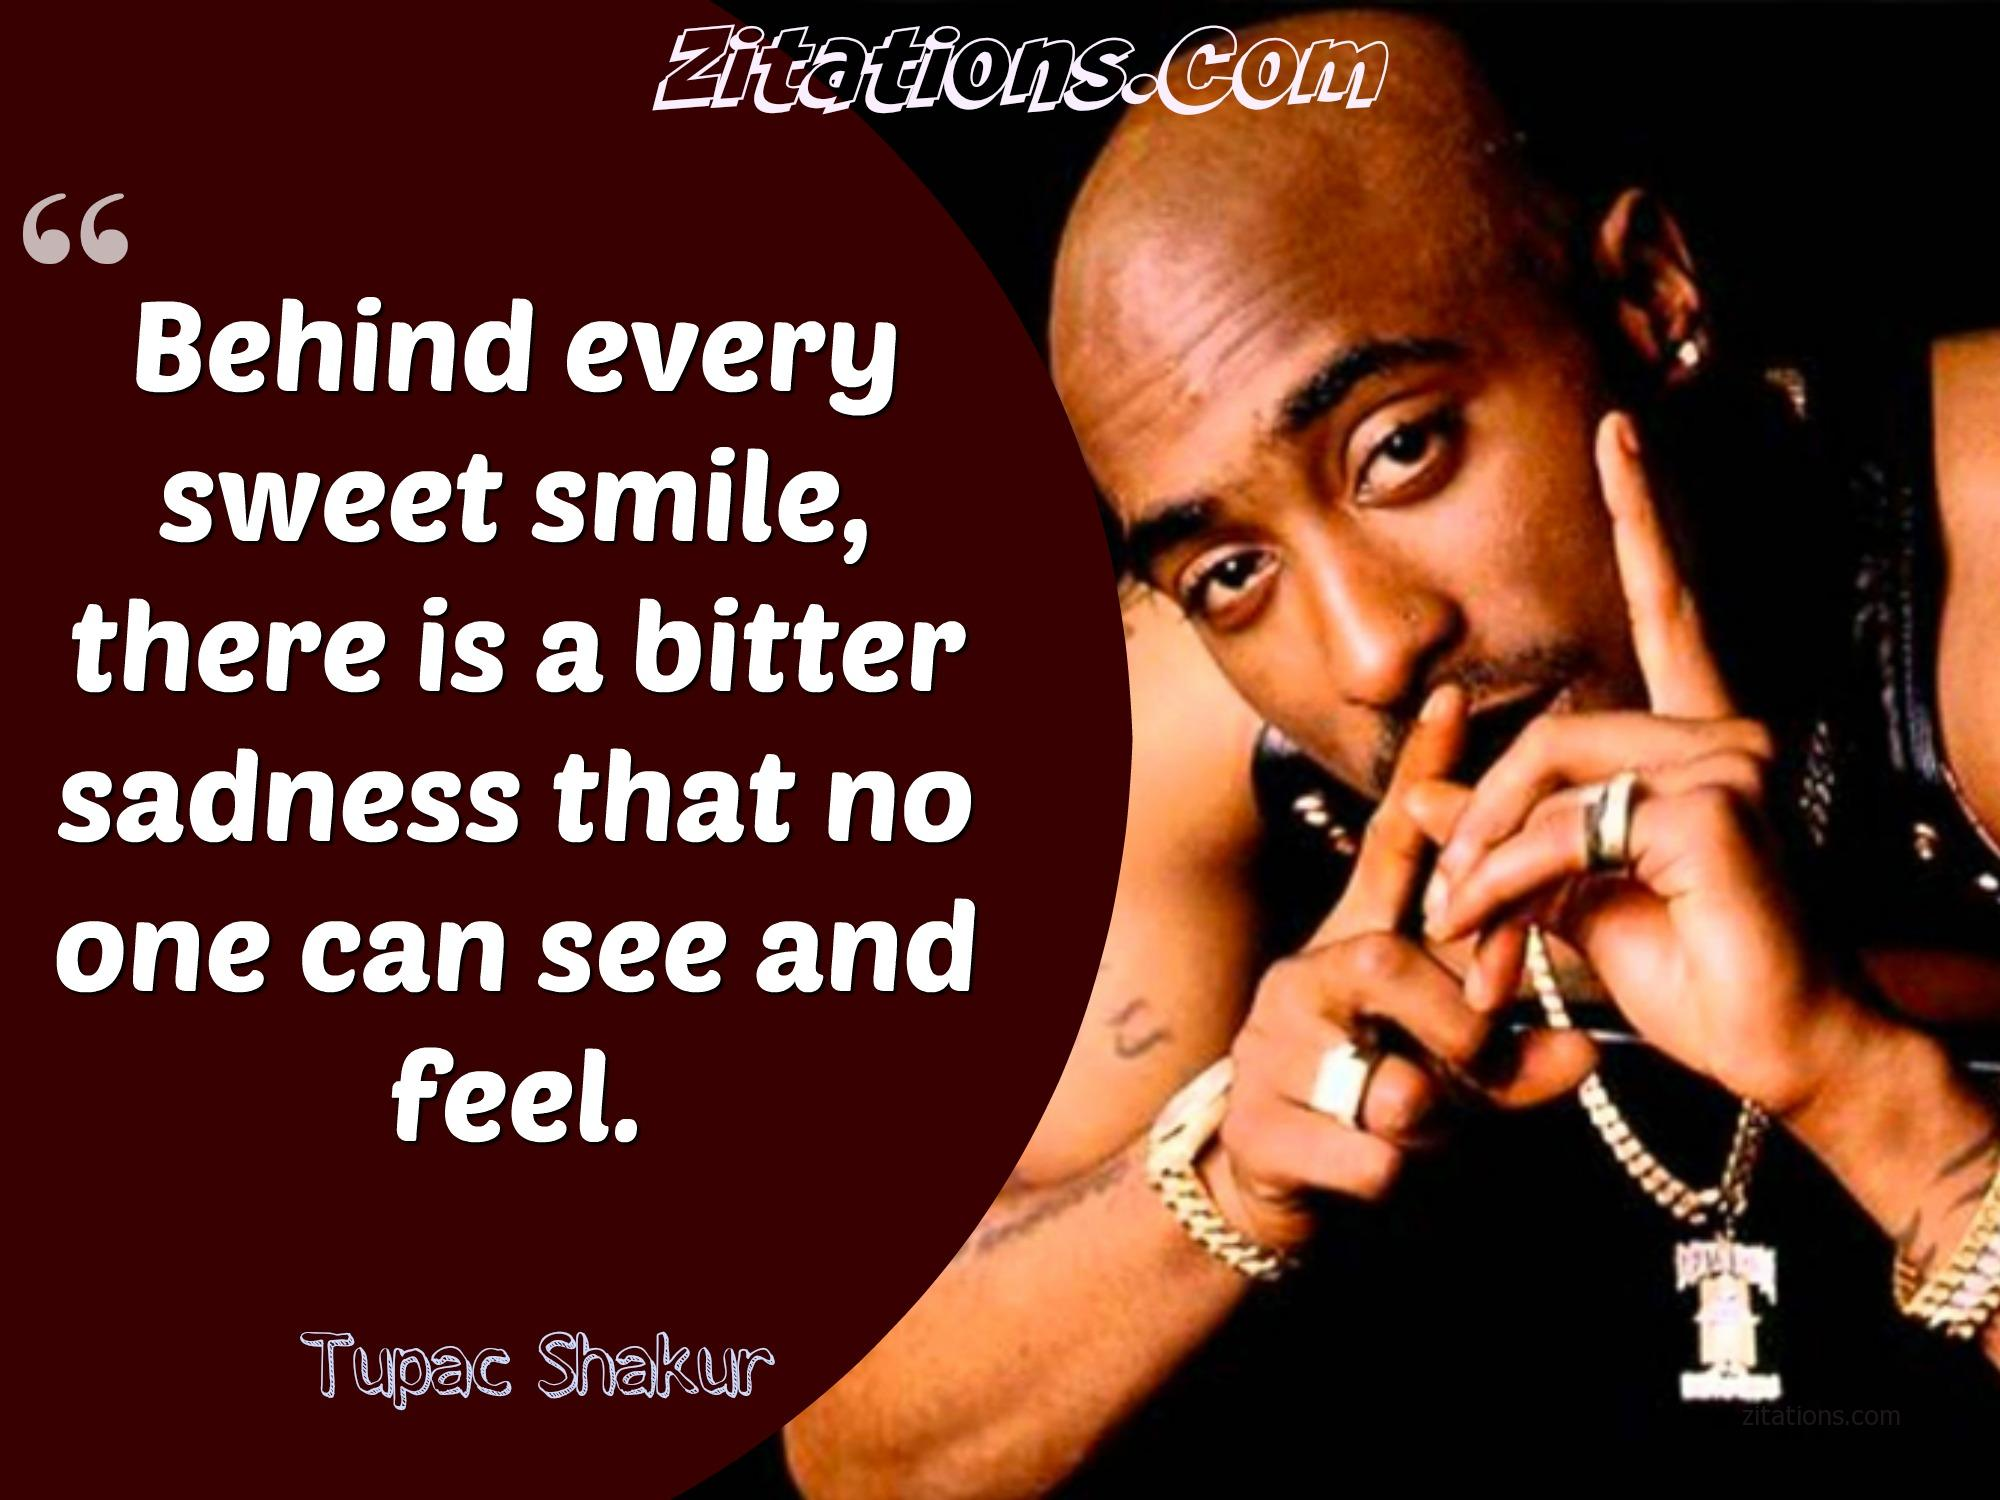 Best Tupac Quotes 2pac Top 10 Best Highly Inspirational